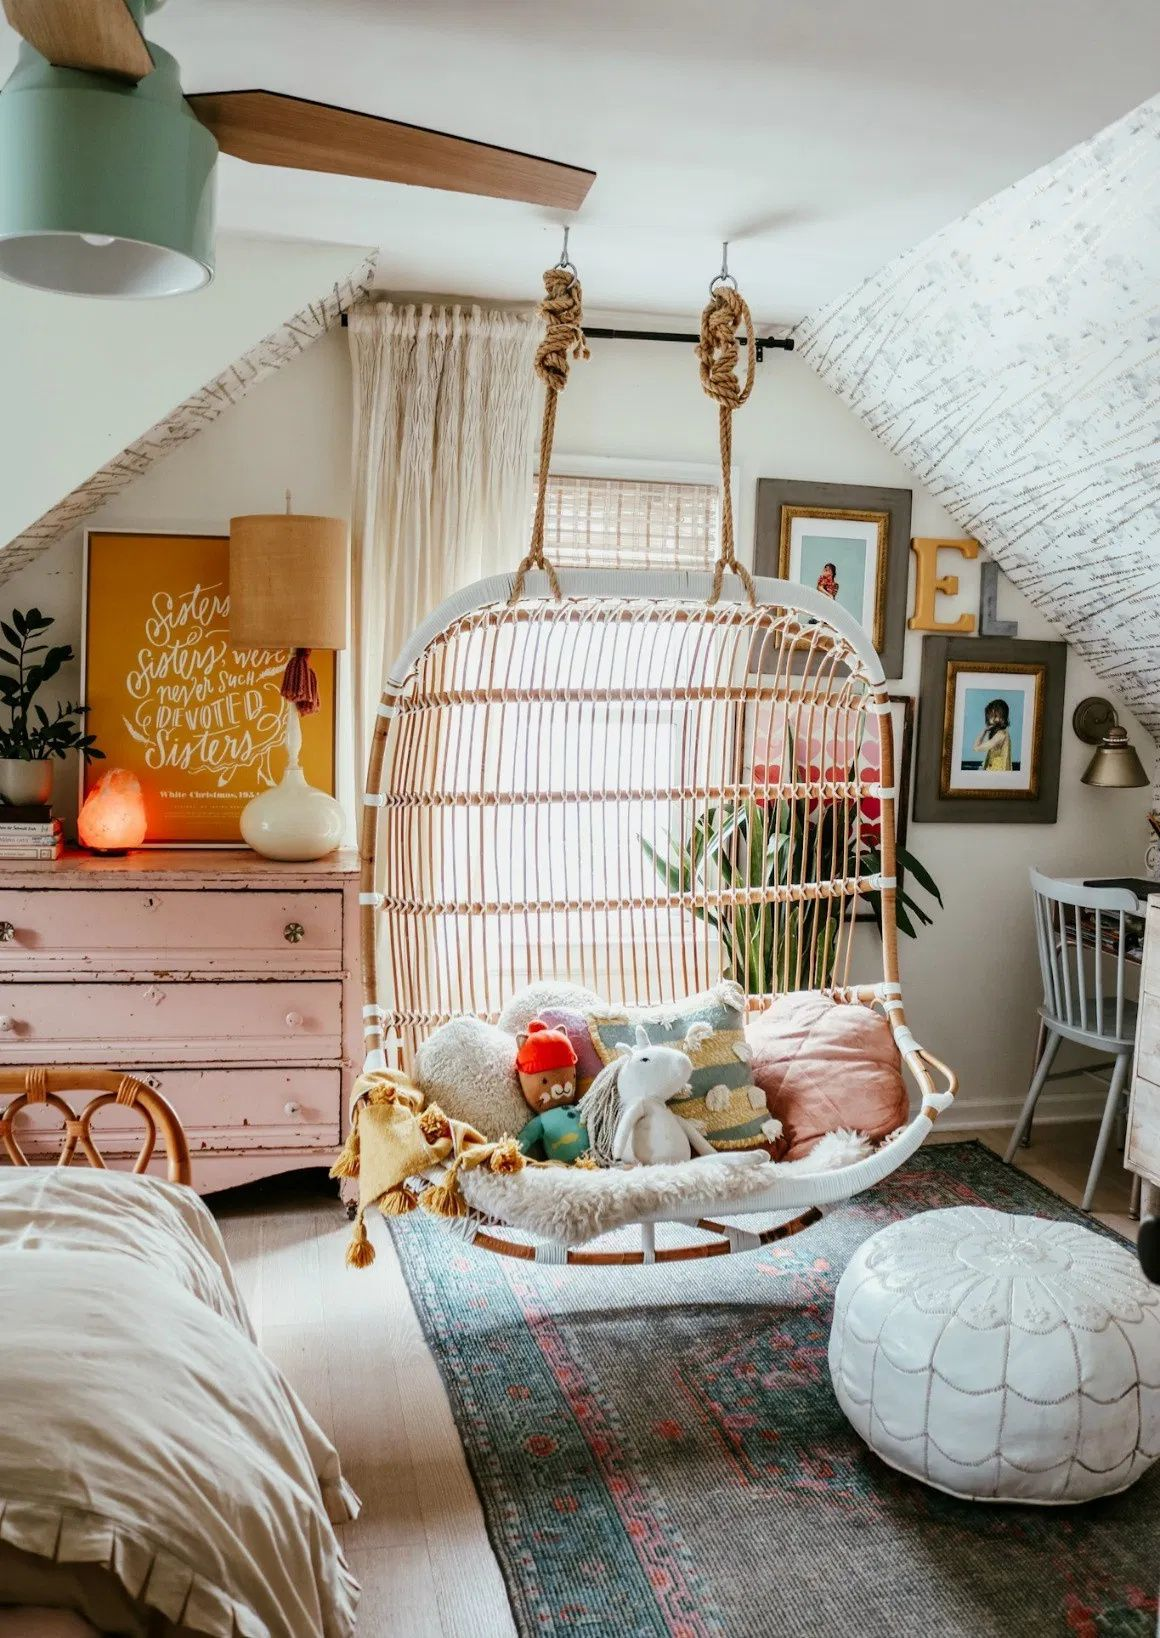 Girls Bedding Refresh with New Beds | Nesting With Grace | Boho chic shared girls room with wallpapered walls and rattan twin beds. #girlsroom #bohochic